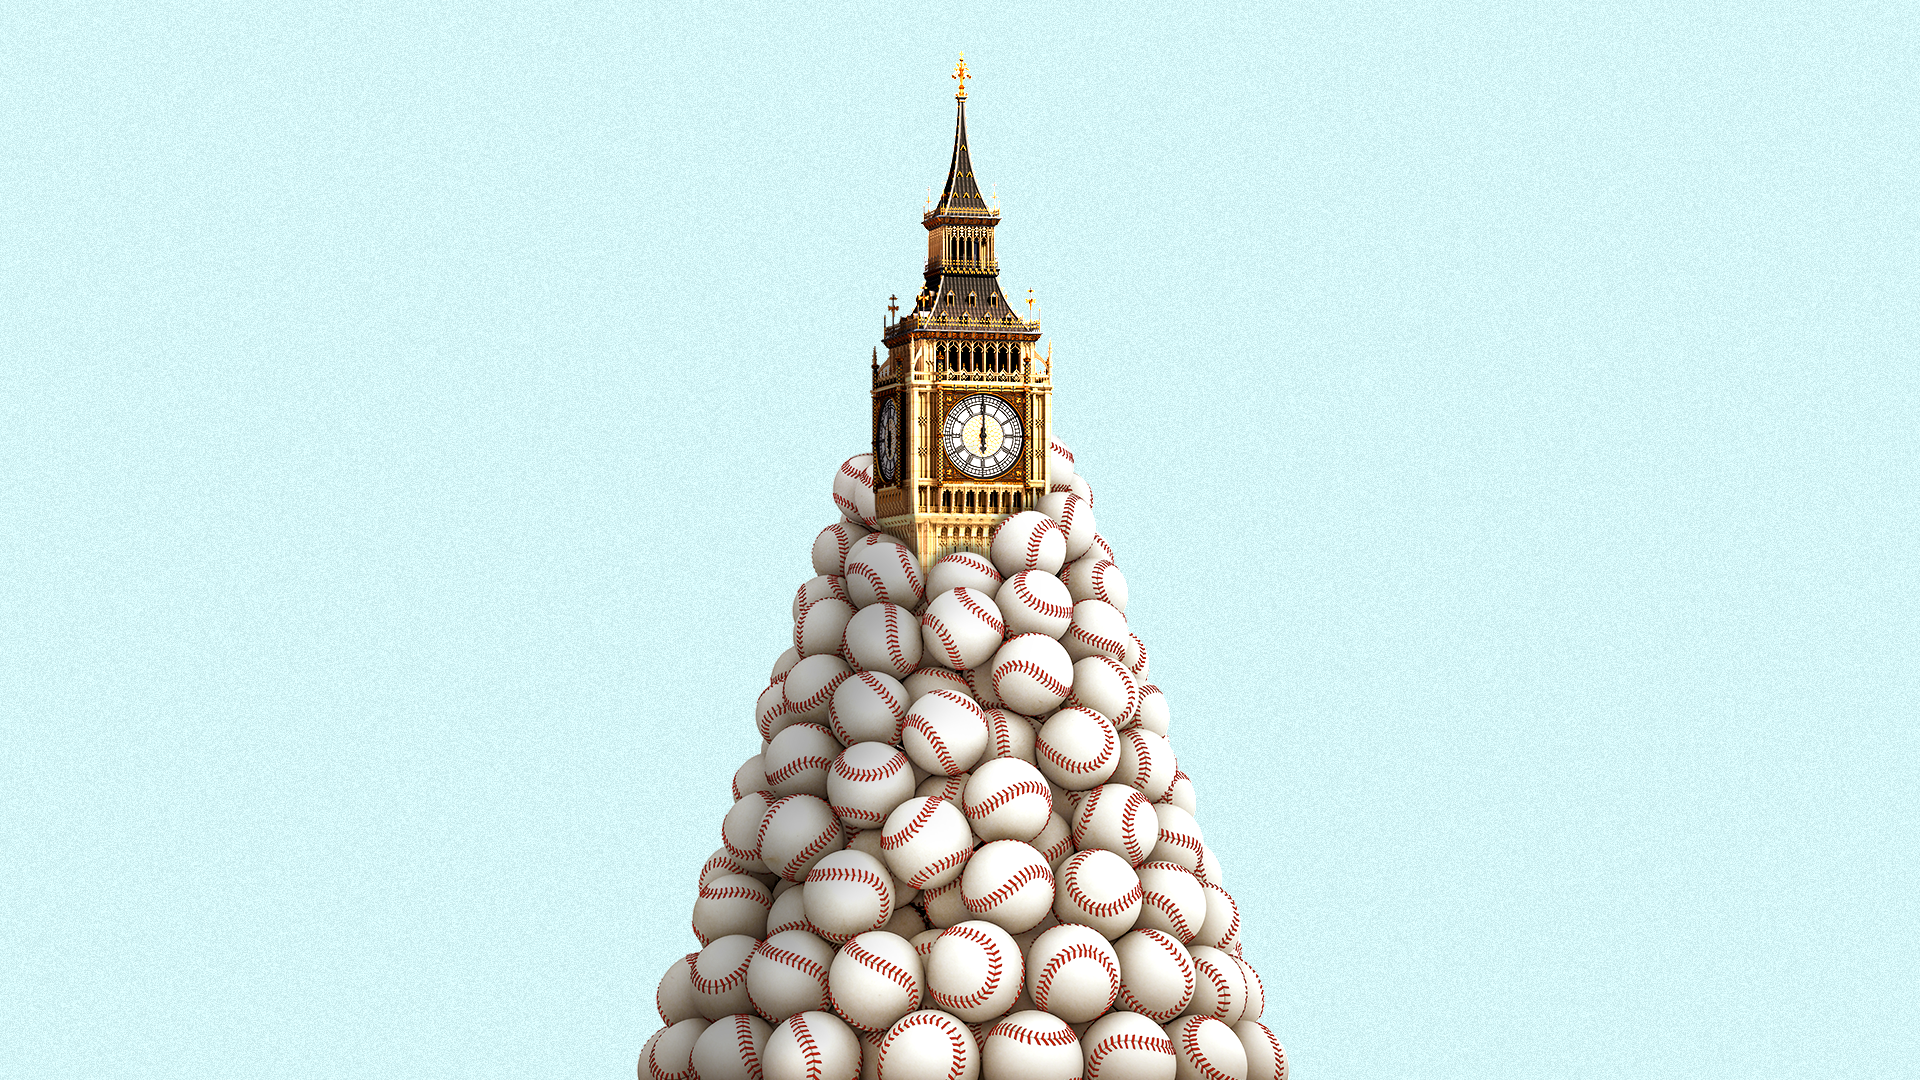 Big Ben engulfed by a mountain of baseballs